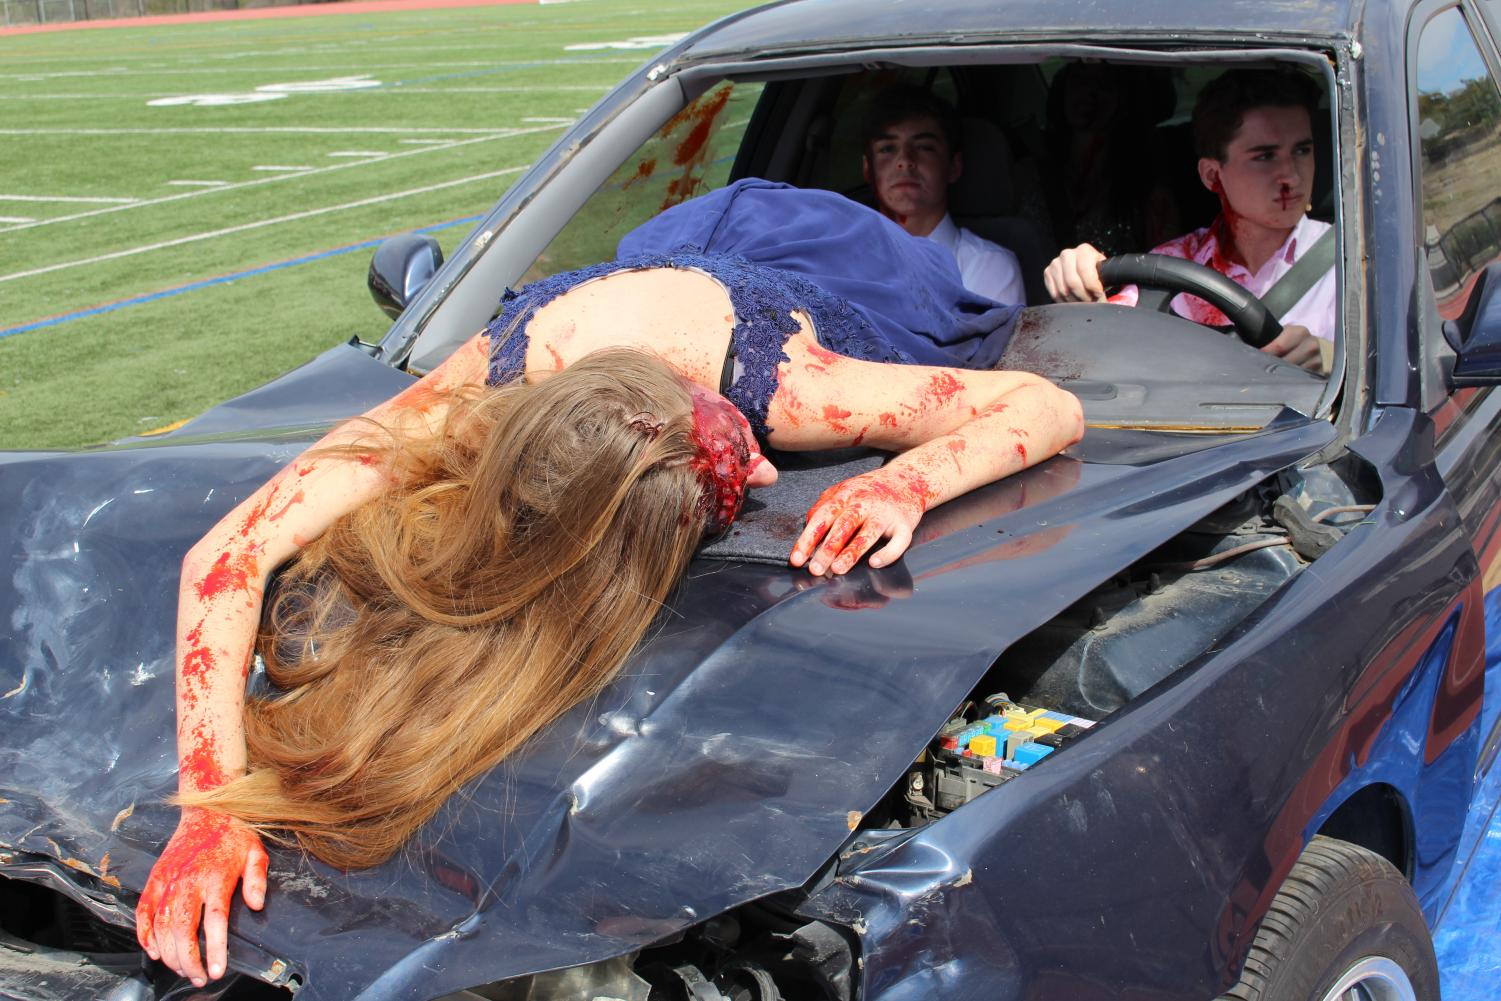 During+the+Every+15+Minutes+two-day+program%2C+Junior+Summer+Fitzgerald+unfortunately+passed+away+in+the+simulation%2C+and+is+displayed+laying+on+the+hood+of+the+totalled+vehicle.